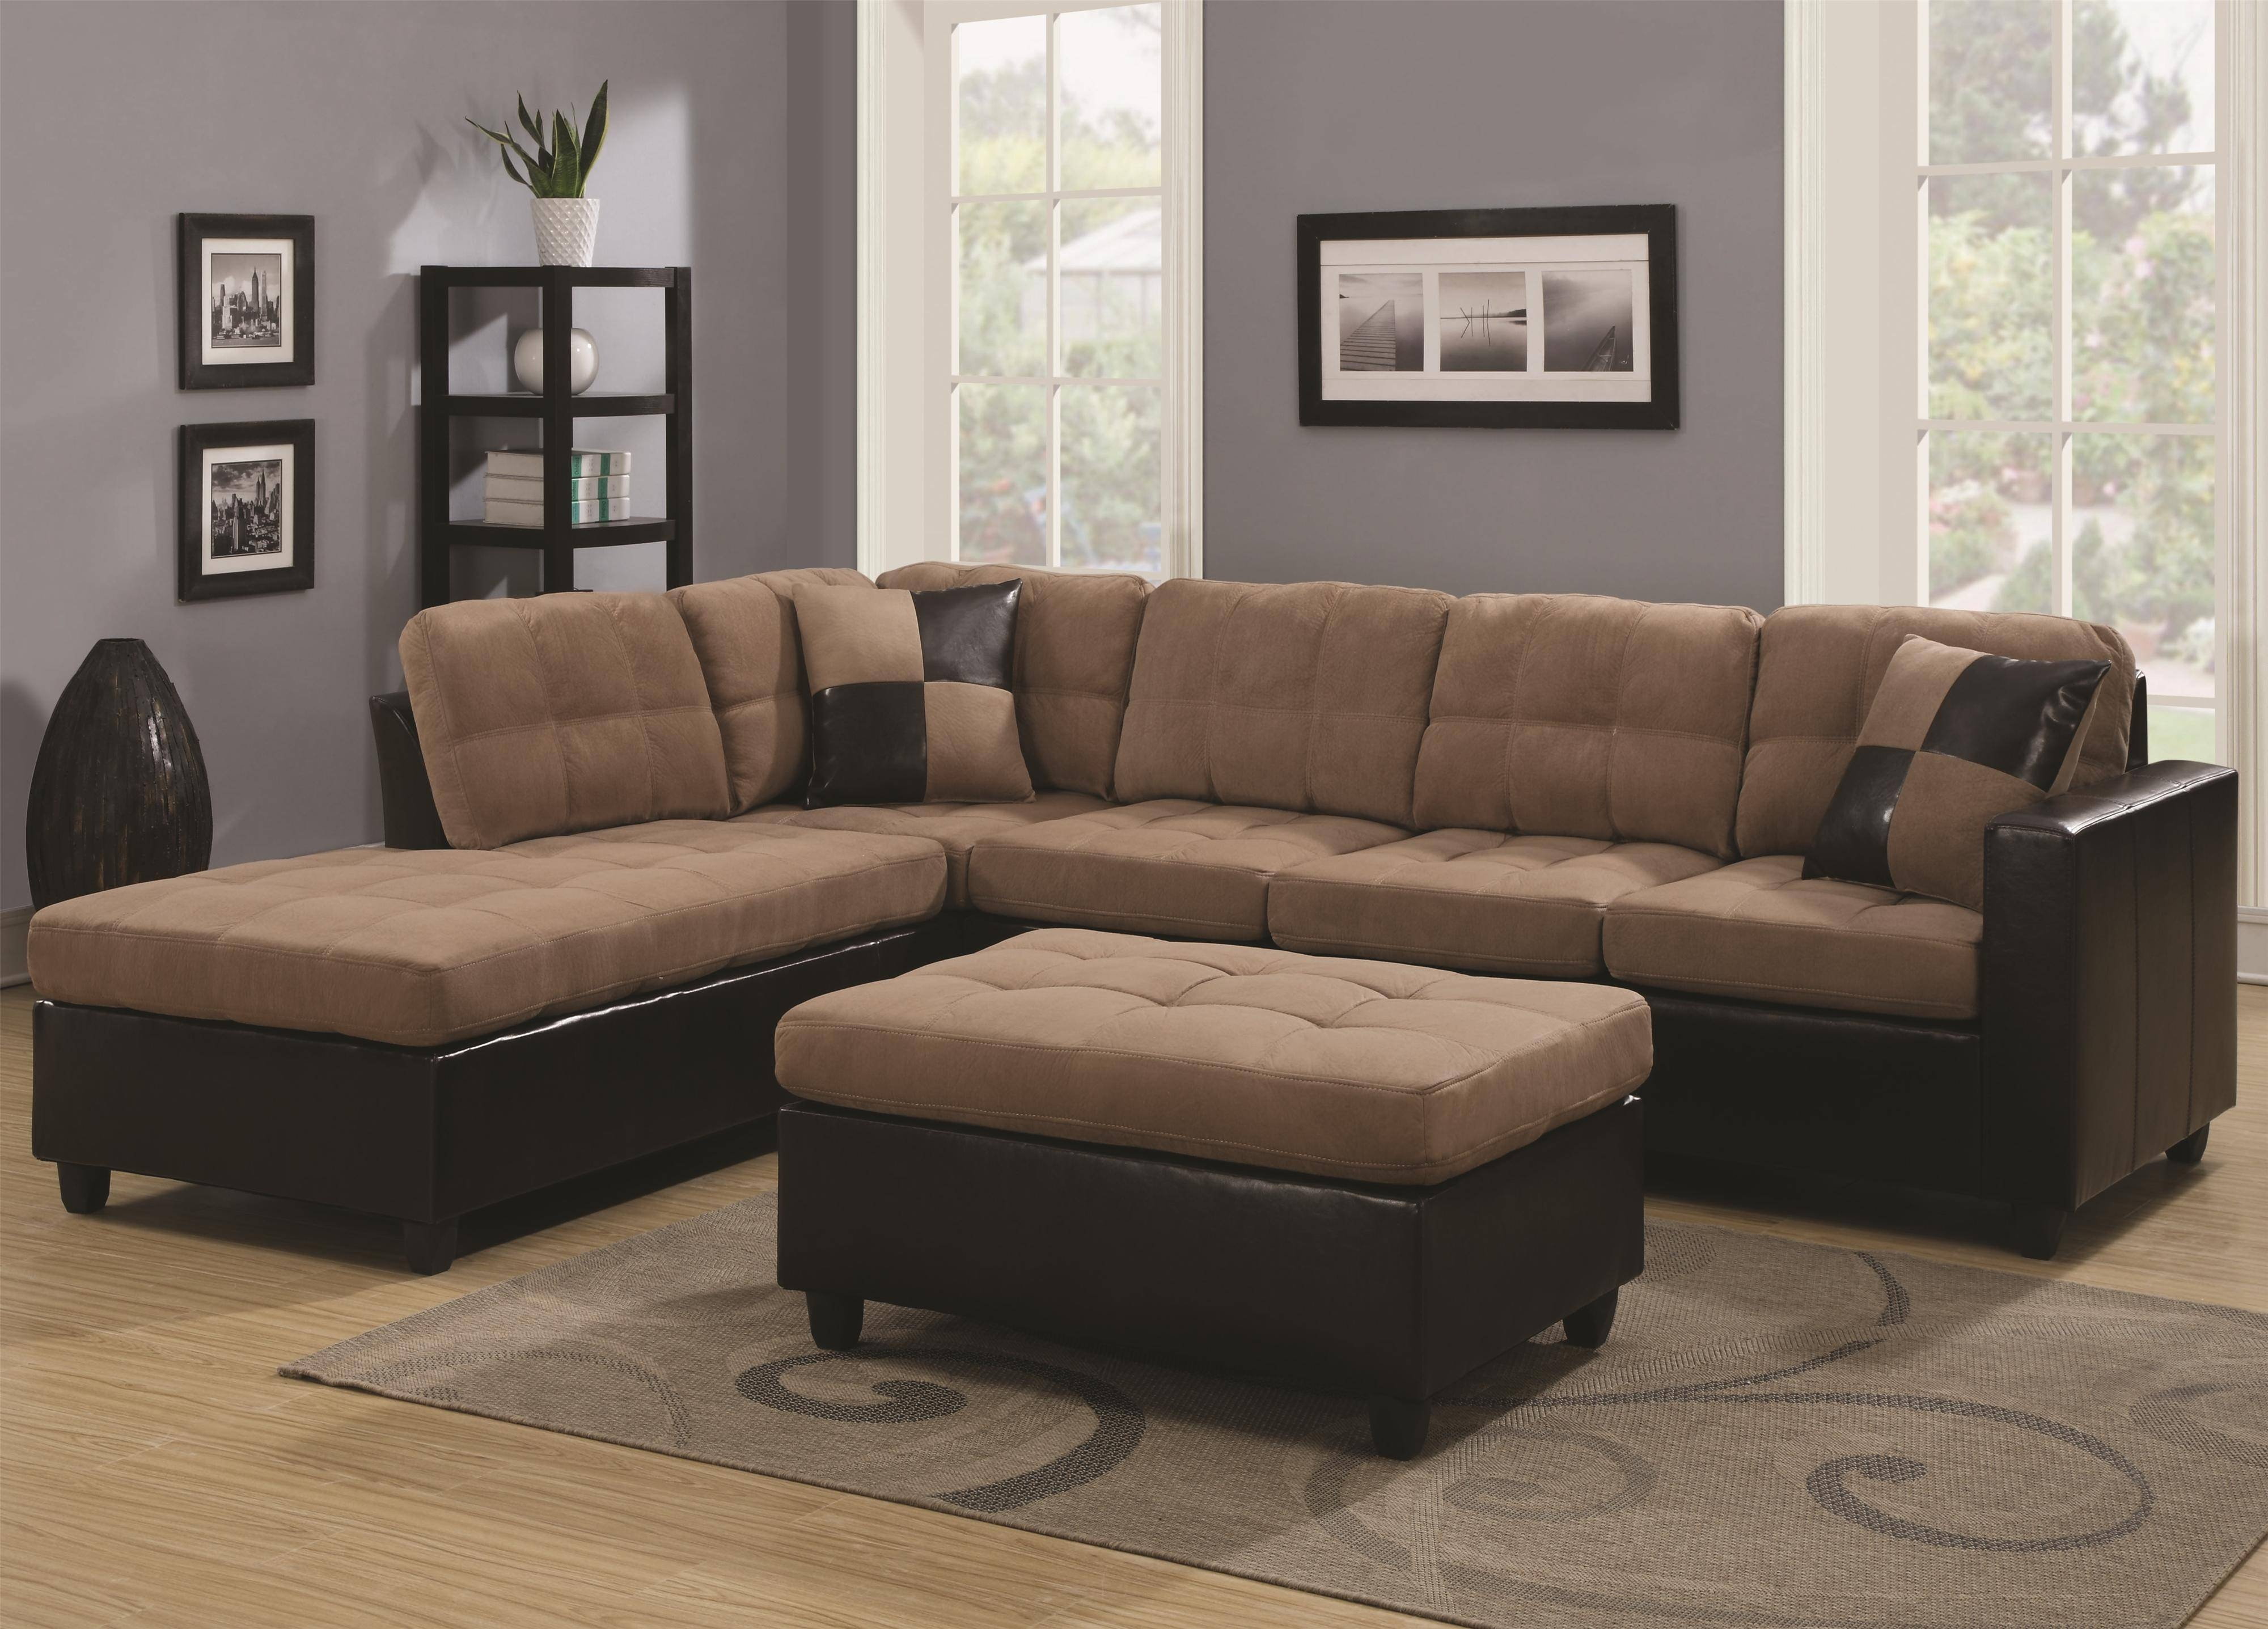 30 Best Ideas of Chenille and Leather Sectional Sofa